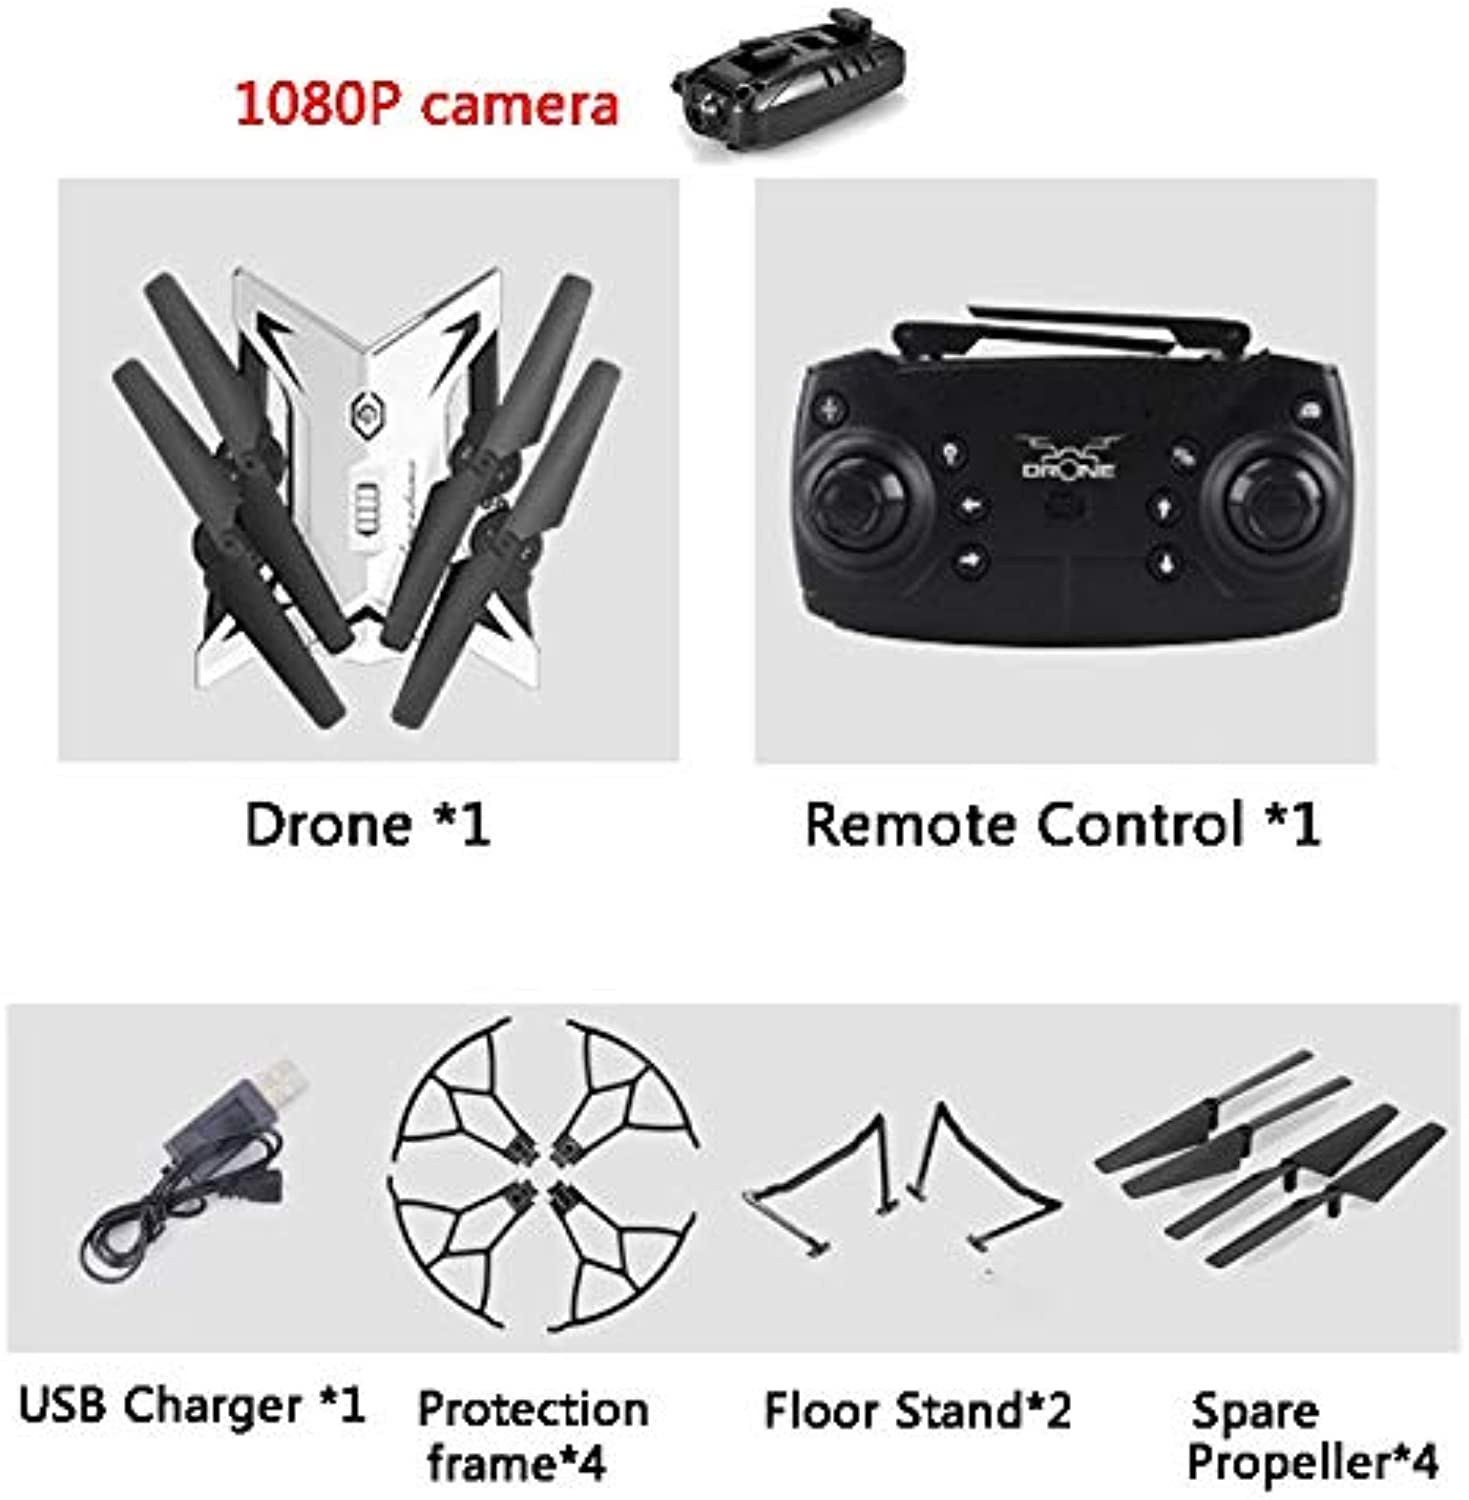 Generic KY601S RC Helicopter Drone with Camera HD 1080P WiFi FPV Selfie Drone Professional Foldable Quadcopter 20 Minutes Battery Life 1080p CameraWhite